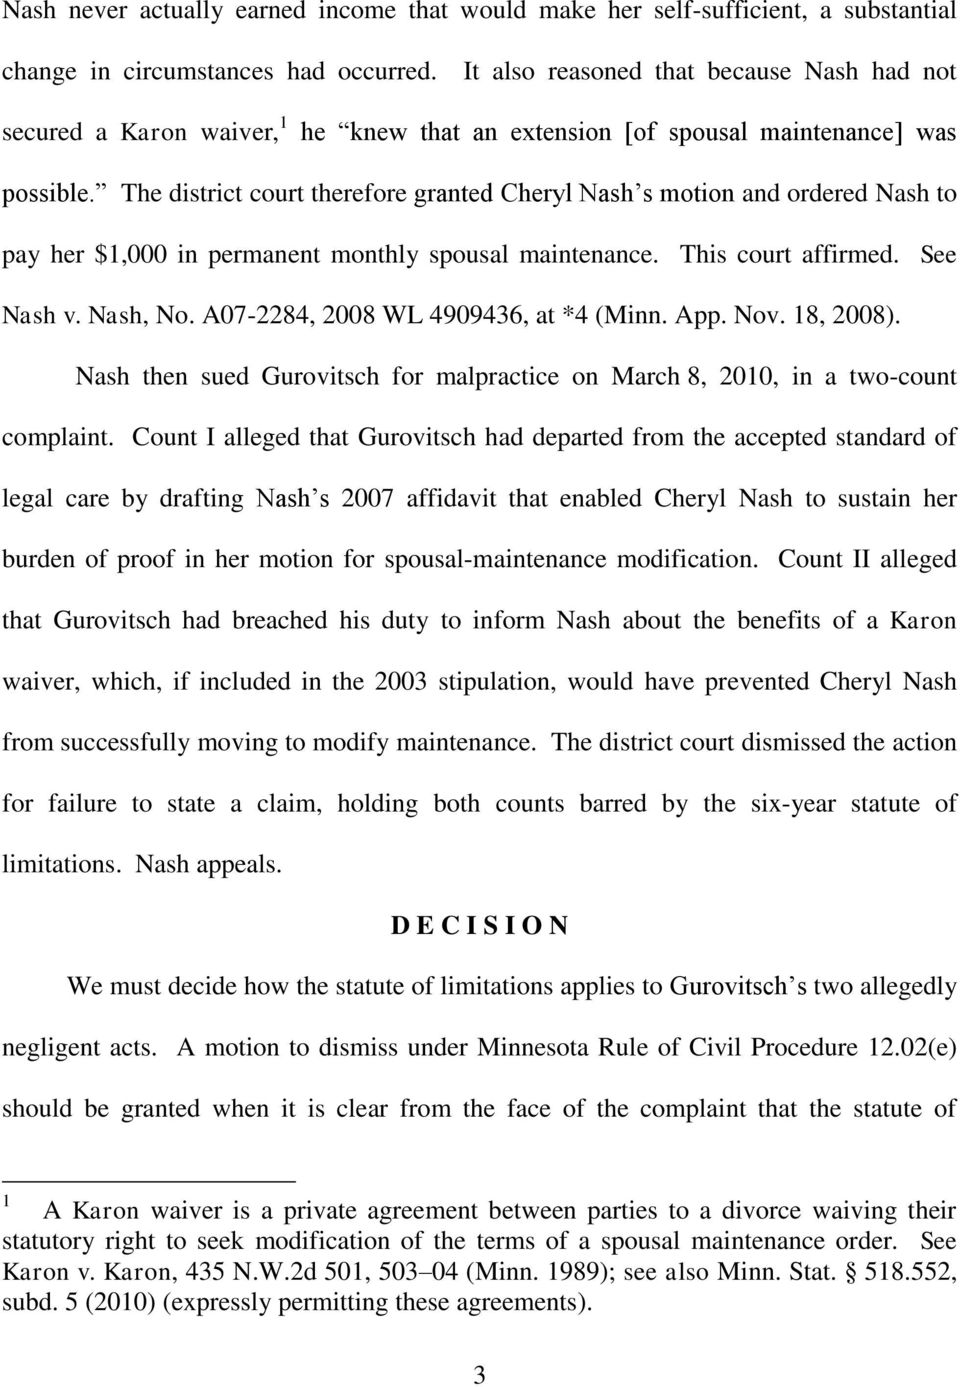 The district court therefore granted Cheryl Nash s motion and ordered Nash to pay her $1,000 in permanent monthly spousal maintenance. This court affirmed. See Nash v. Nash, No.